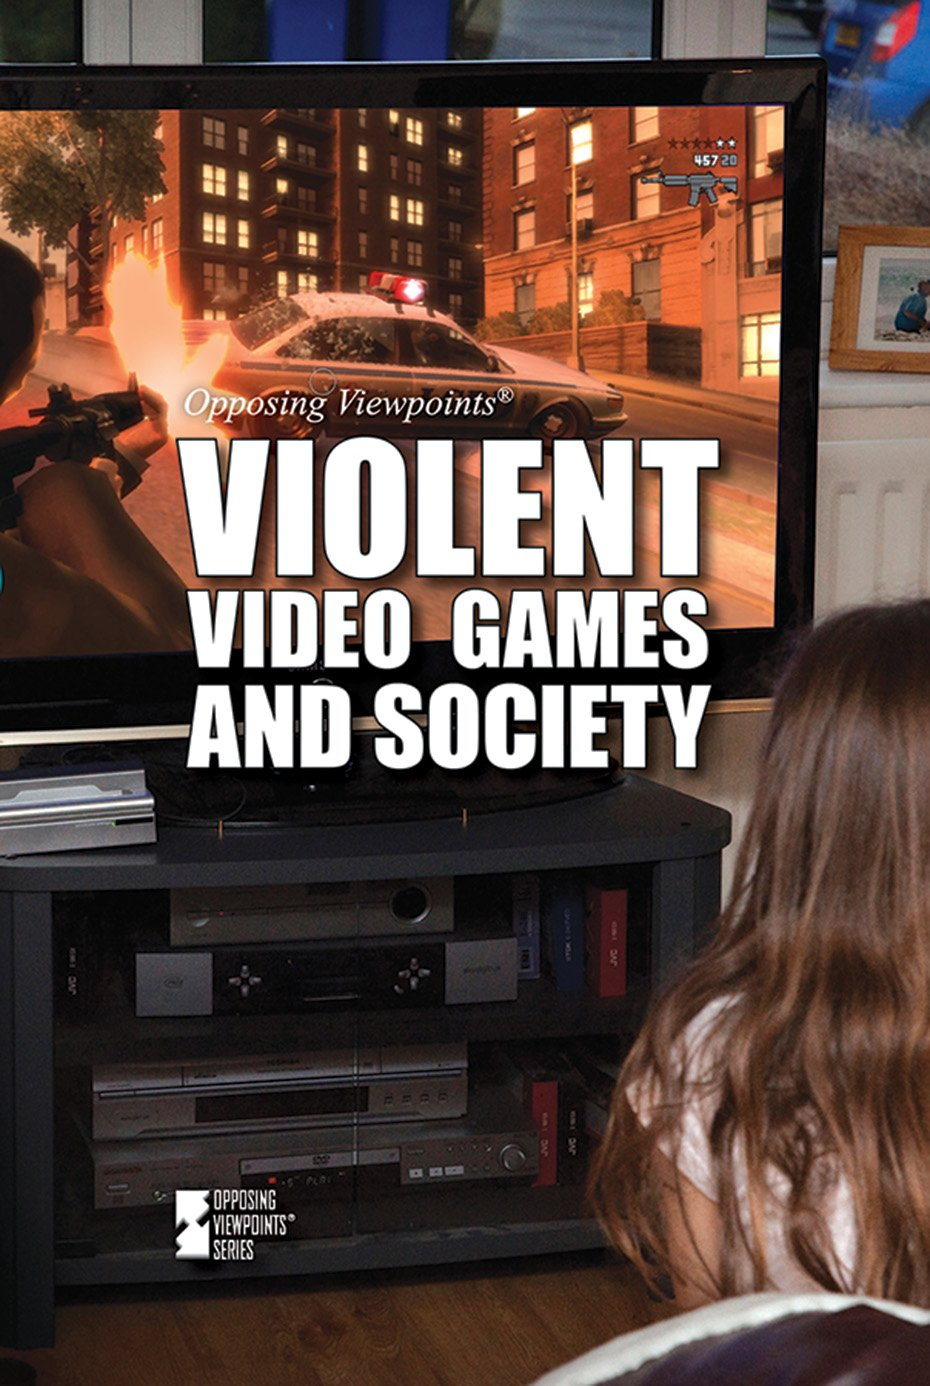 Violent Video Games and Society (Opposing Viewpoints) PDF